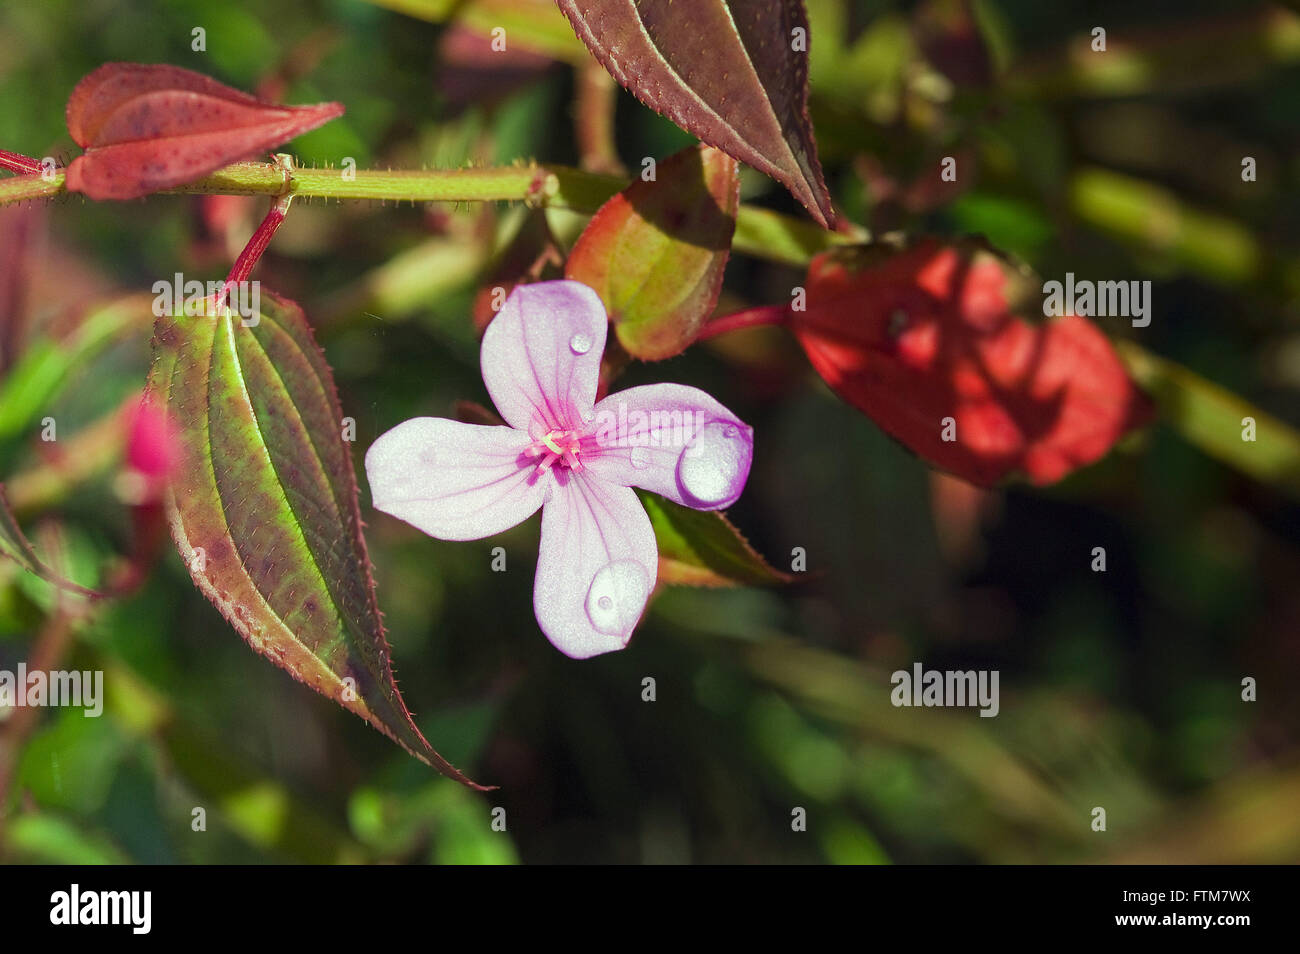 Flower with dew drops - Stock Image